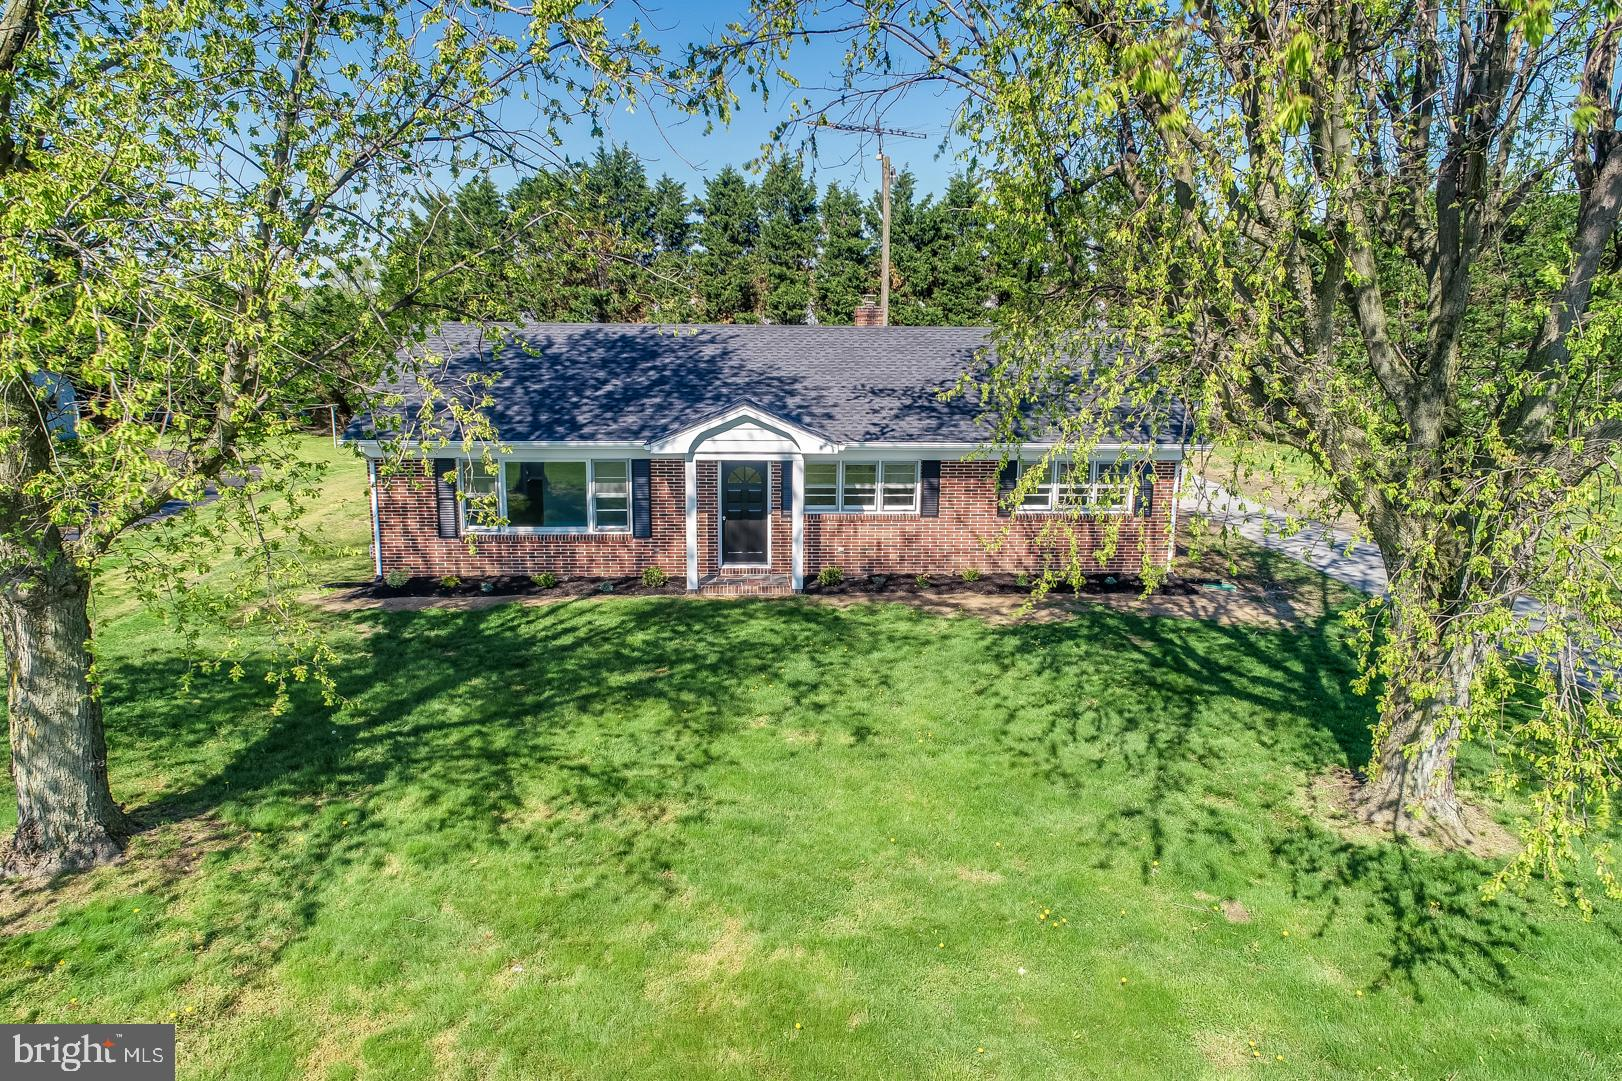 Beautifully renovated 3 bedroom 1 bathroom brick rancher sitting on just under 1/2 an acre is ready